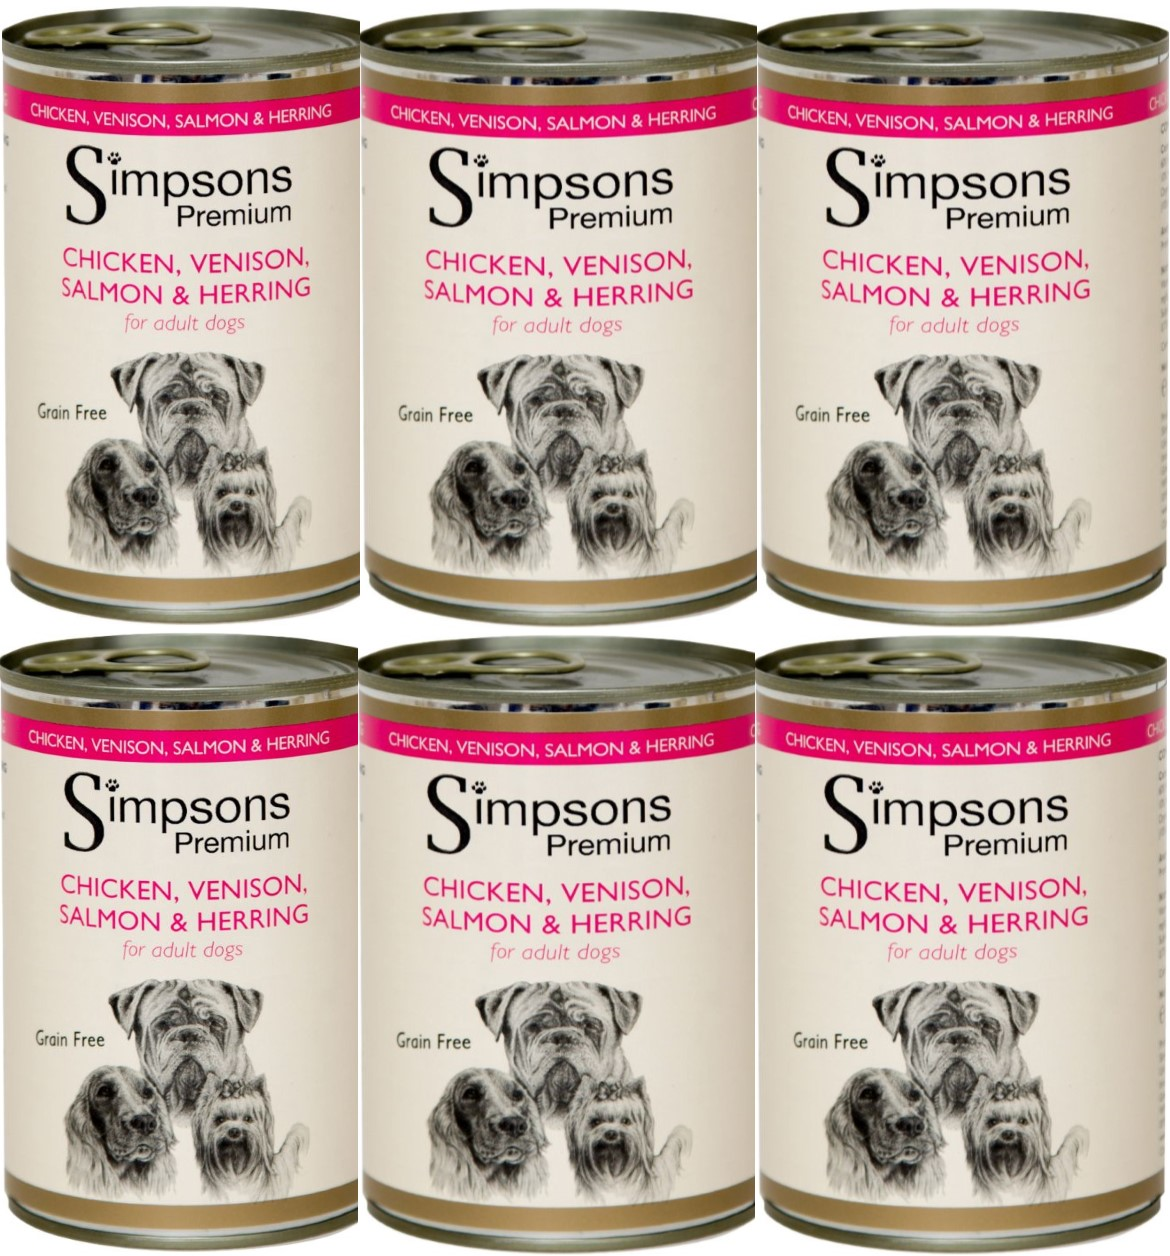 Simpsons Adult Dog Chk/Ven/Salmon & Herring 400g (x6)